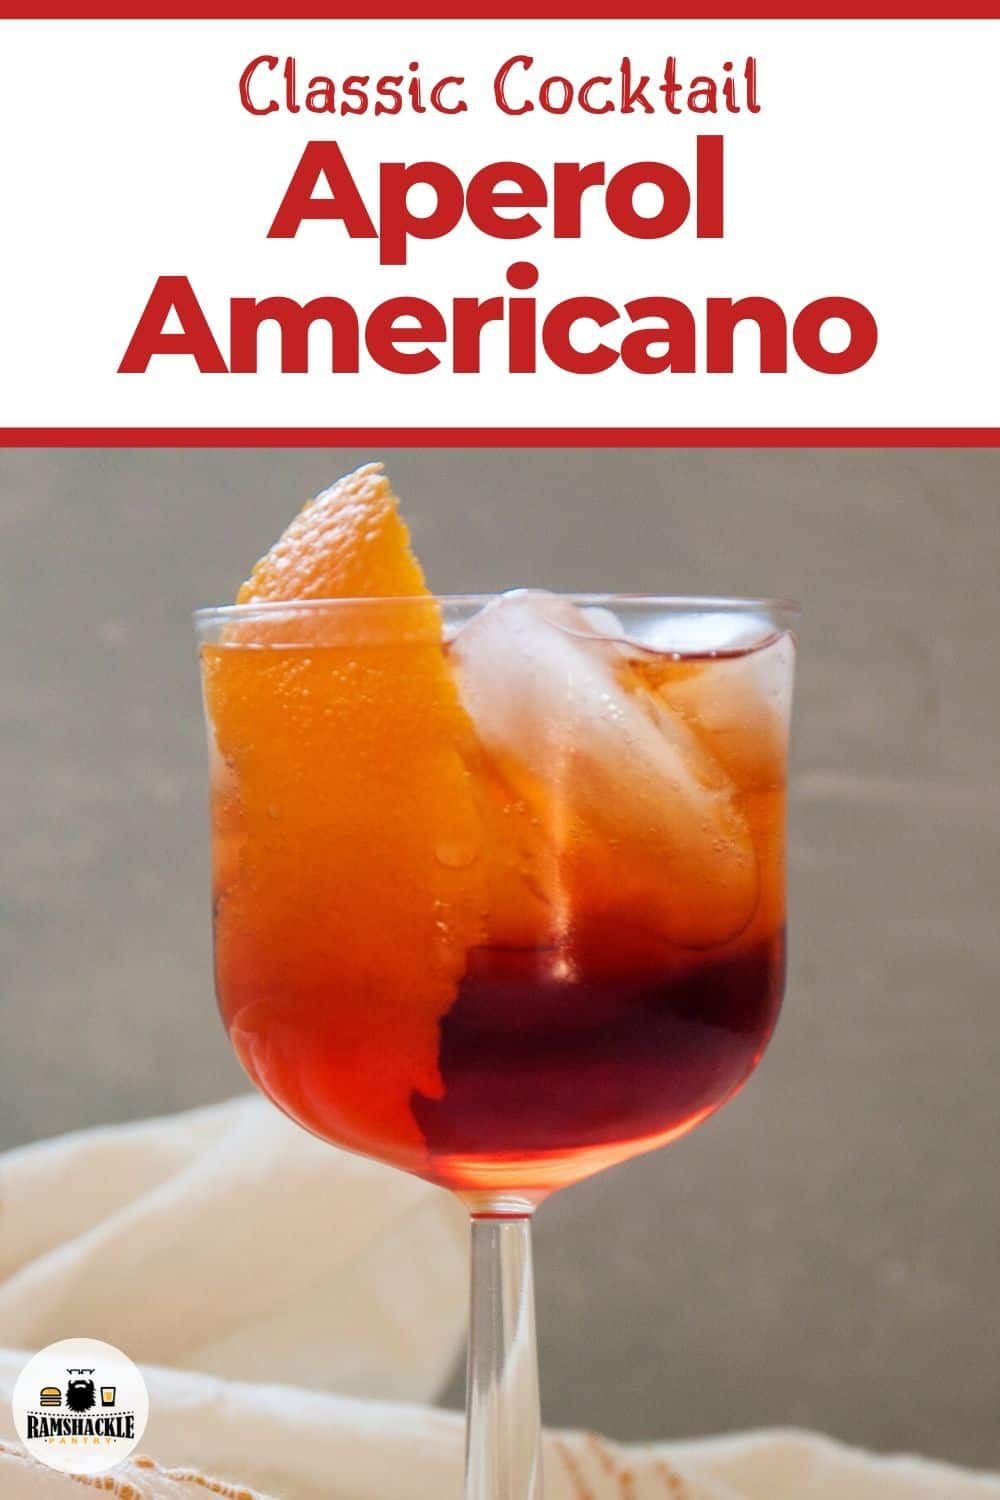 Aperol Americano Cocktail Americano Cocktail Recipe Aperol Cocktail Recipes